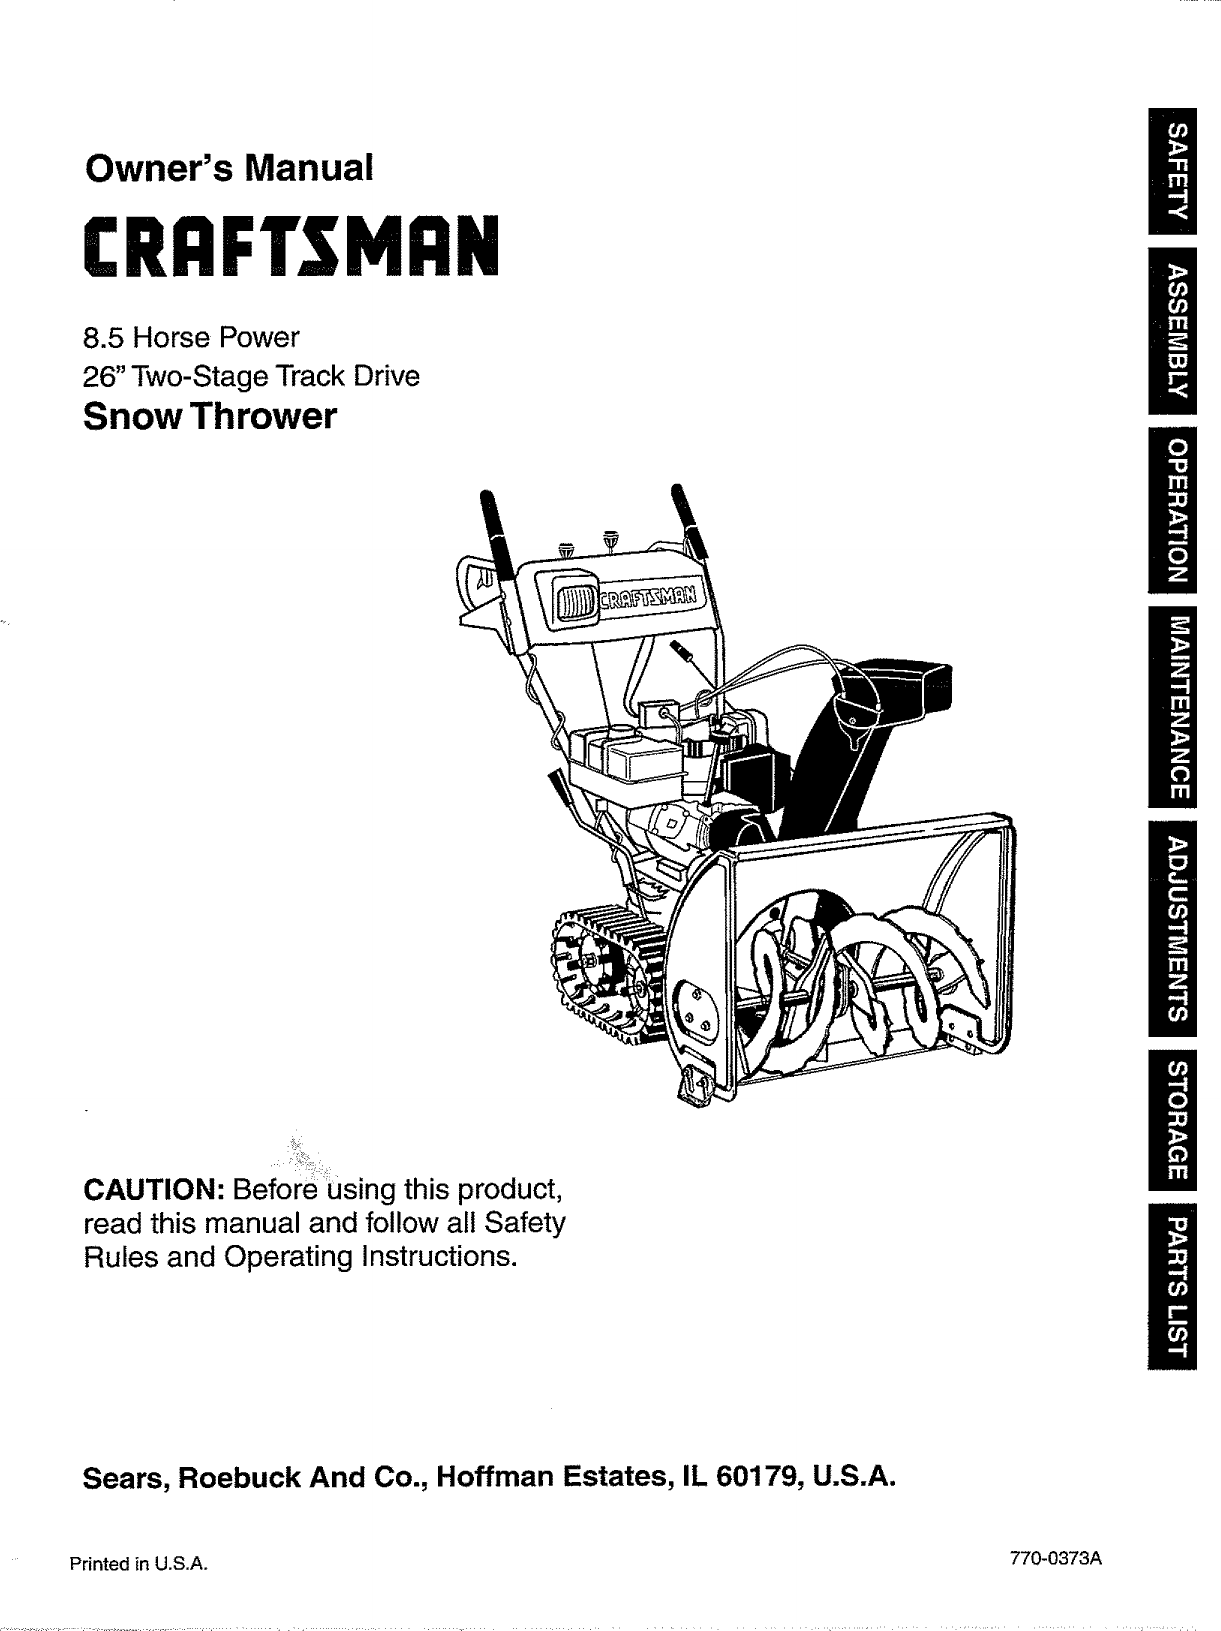 Craftsman 247885500 User Manual Snow Thrower Manuals And Guides L0810513 Tecumseh 37000 Starter Schematic